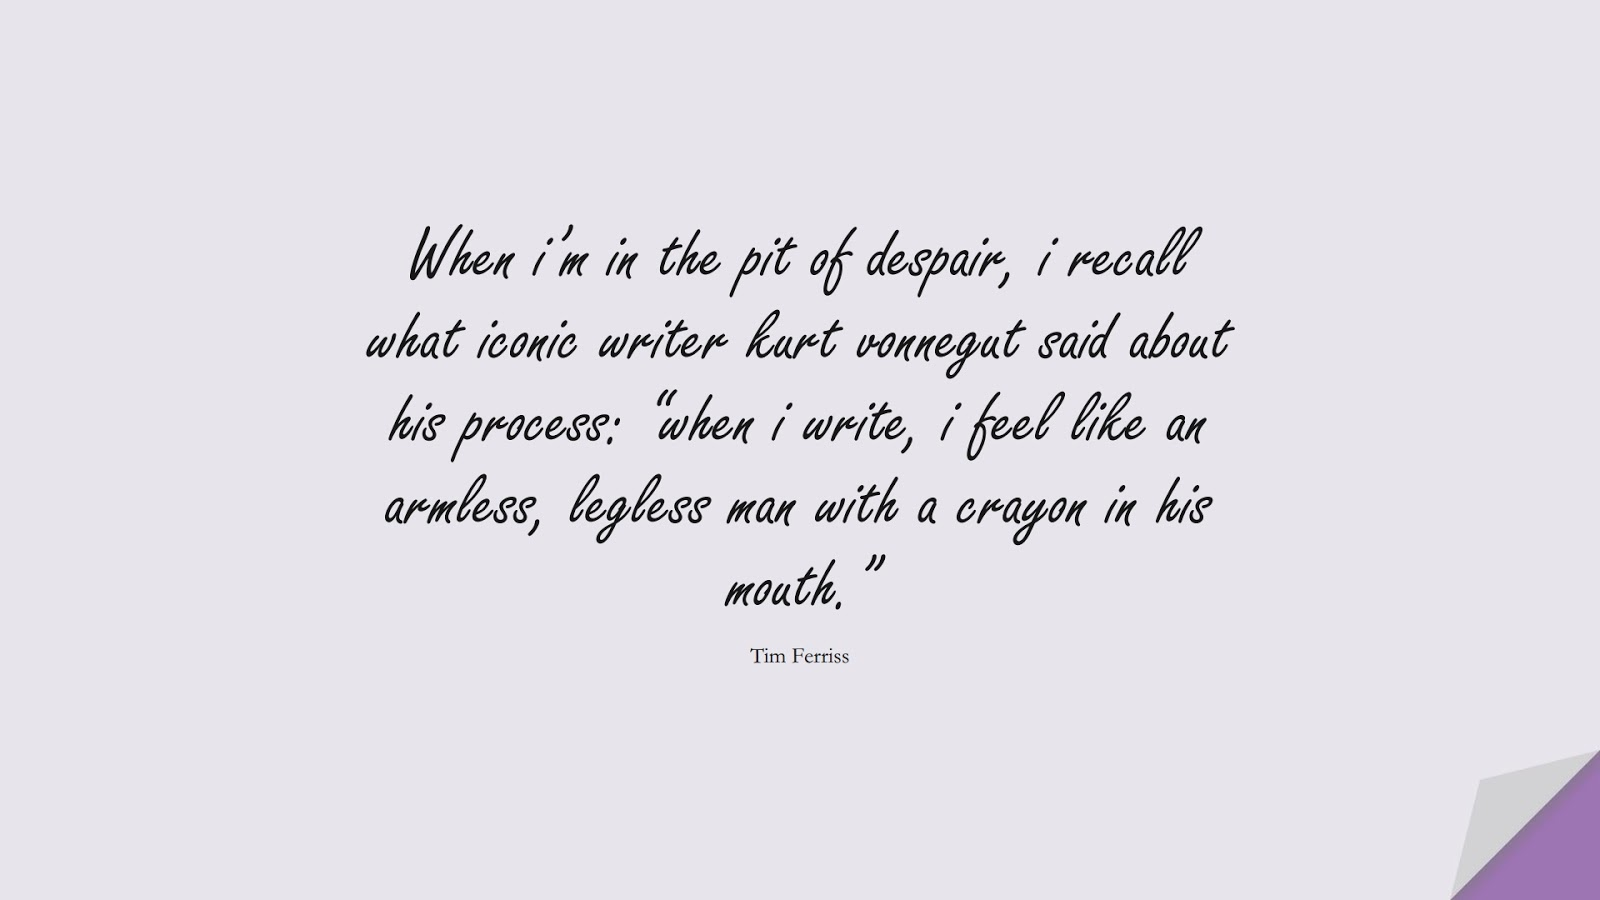 """When i'm in the pit of despair, i recall what iconic writer kurt vonnegut said about his process: """"when i write, i feel like an armless, legless man with a crayon in his mouth."""" (Tim Ferriss);  #TimFerrissQuotes"""